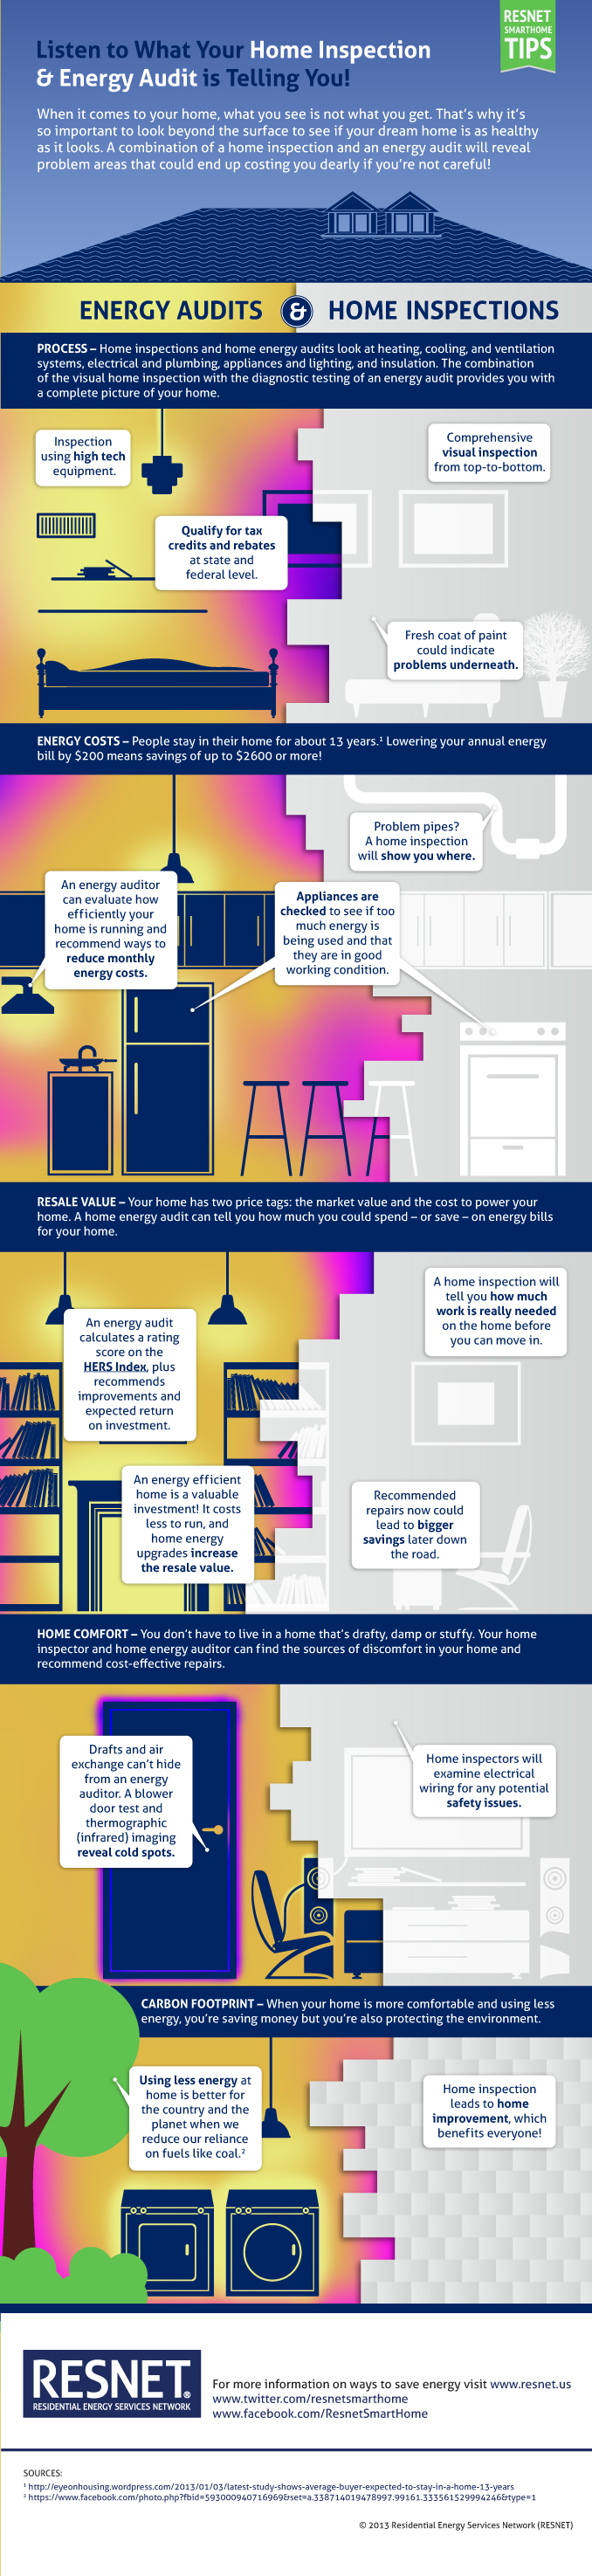 Home Inspection and Home Energy Audit Infographic